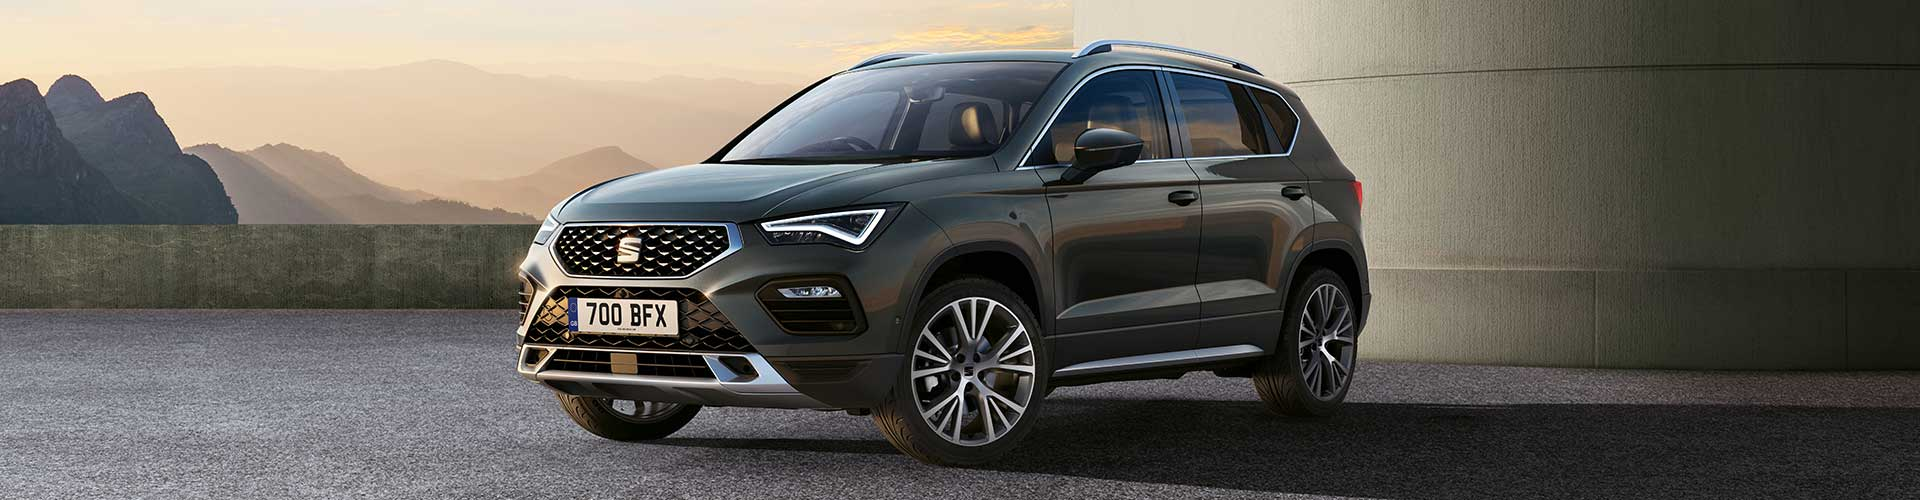 Image of SEAT Ateca